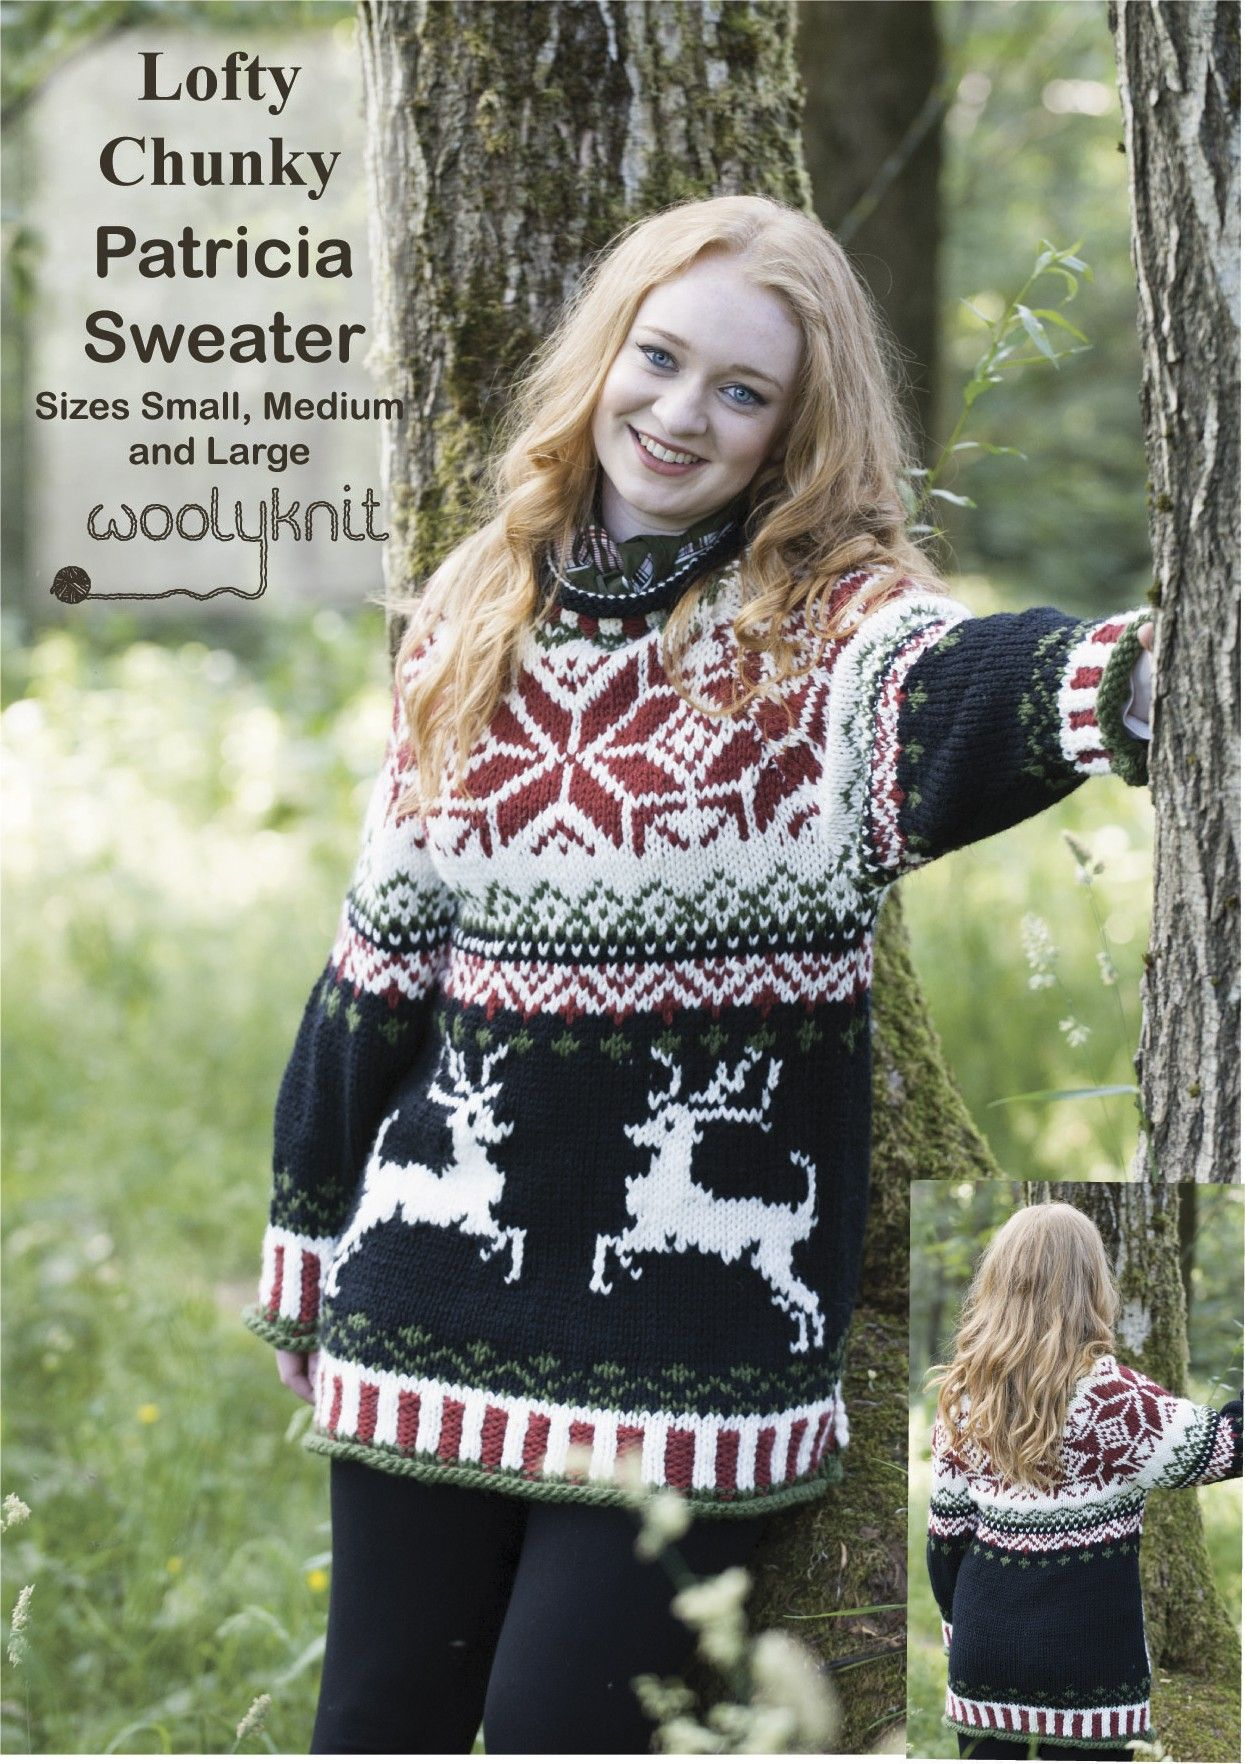 SPECIAL OFFER get the Patricia Christmas pattern for £1